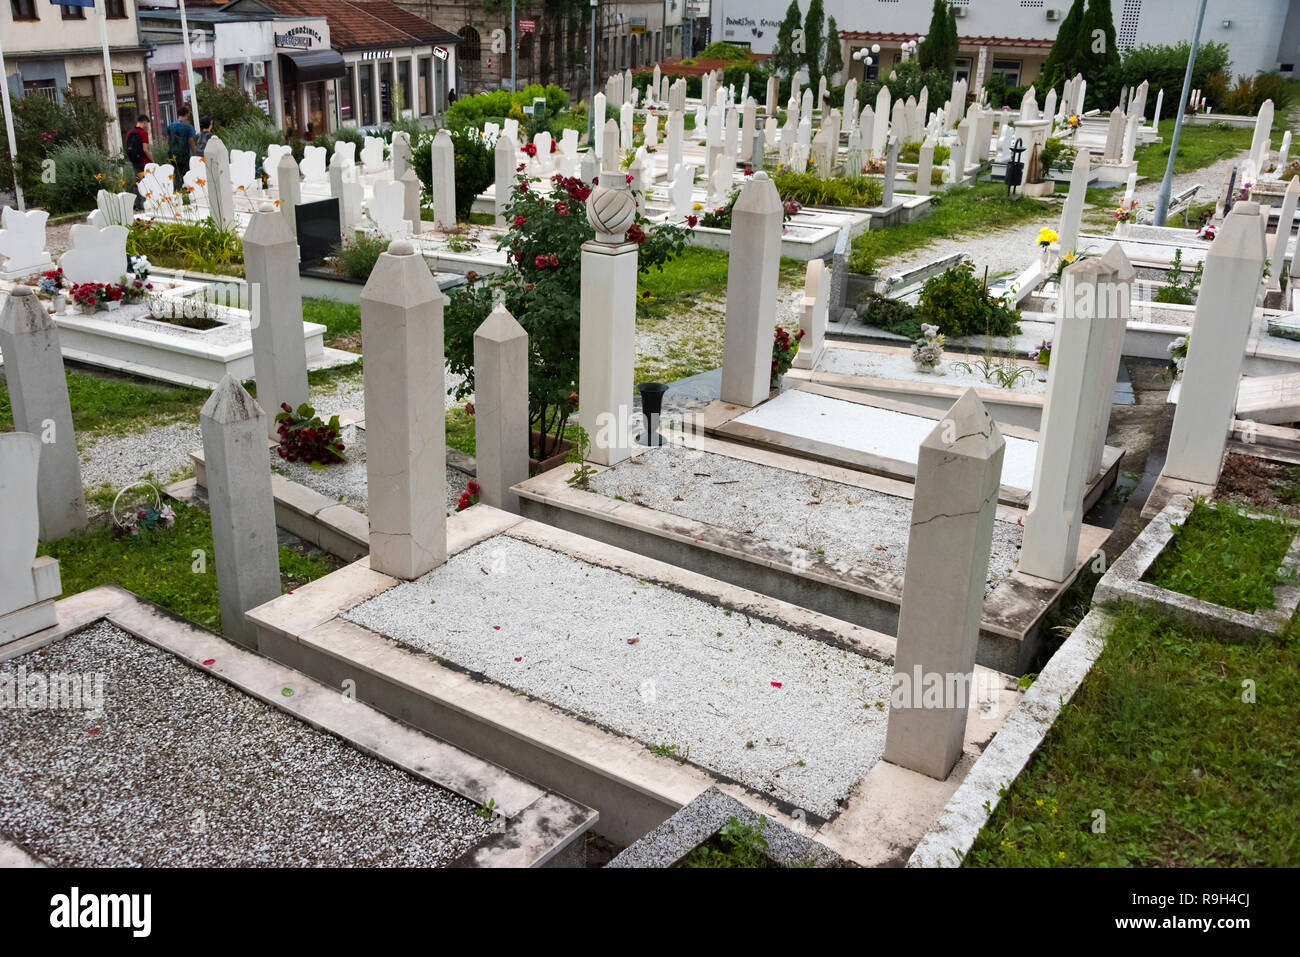 Cemetery, Mostar, Bosnia and Herzegovina Stock Photo